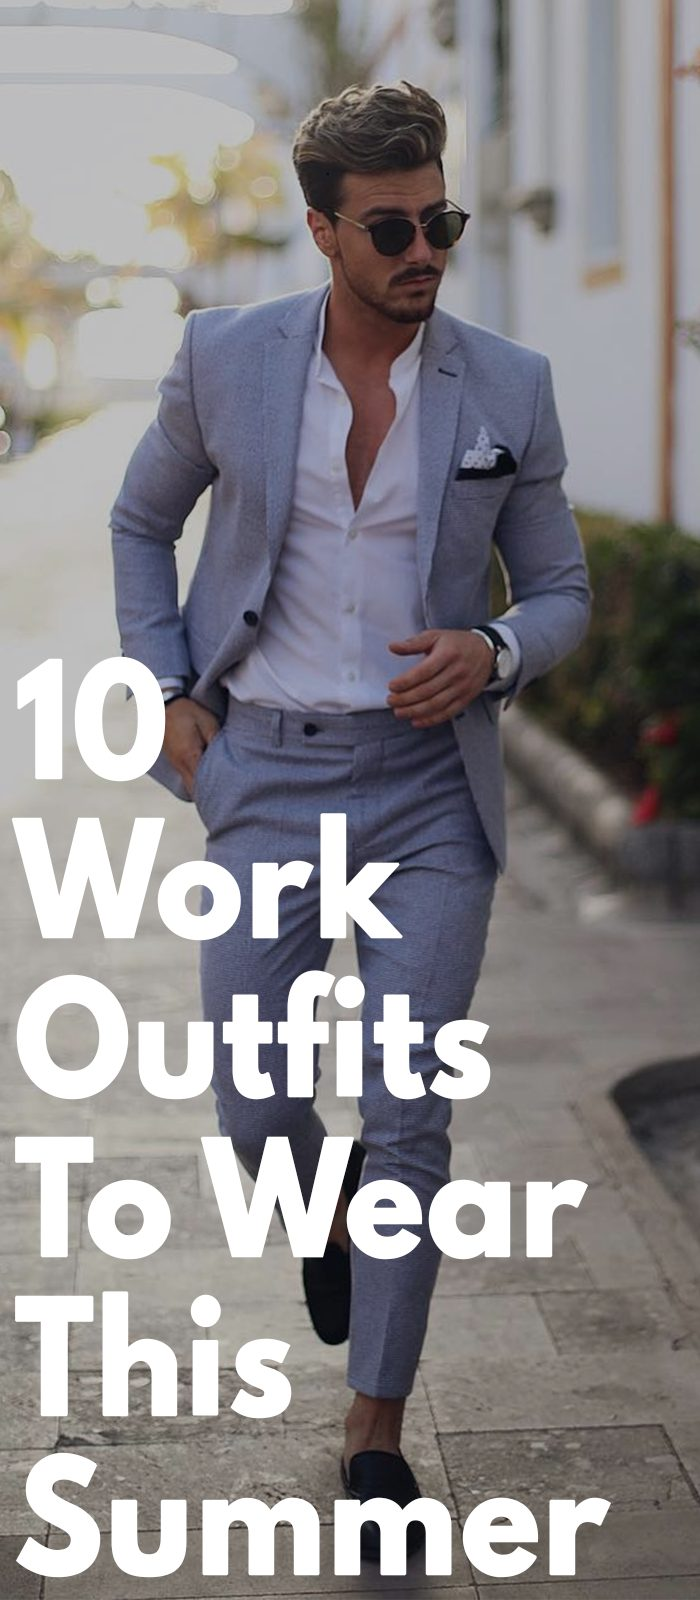 10 Work Outfit To Wear This Summer